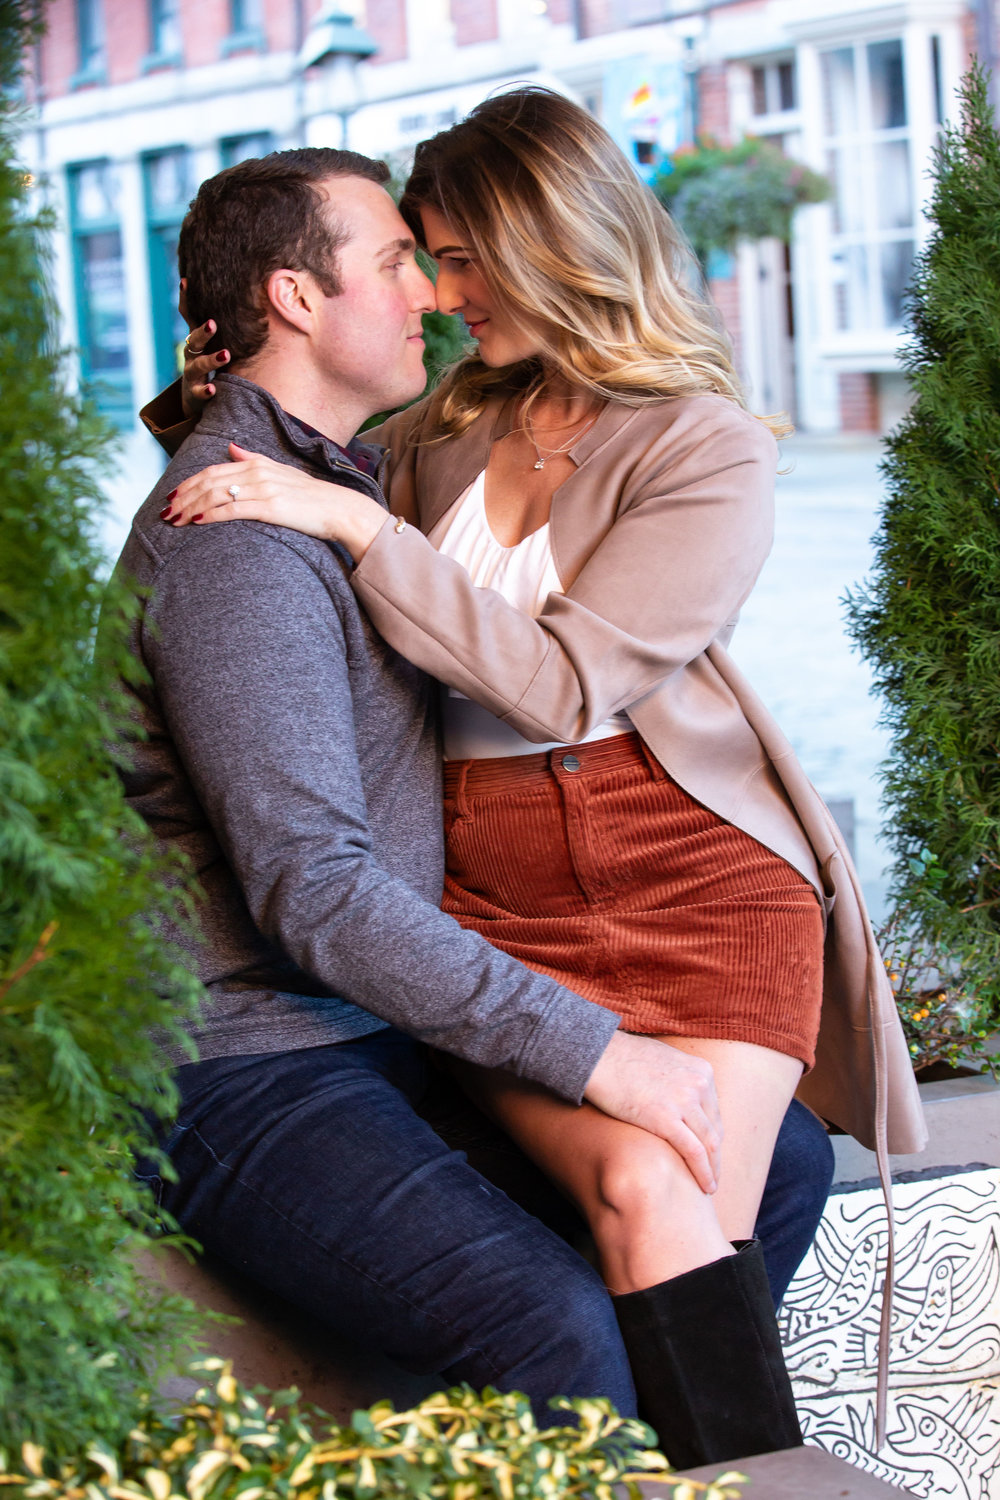 seaport-engagement-nyc-136.jpg